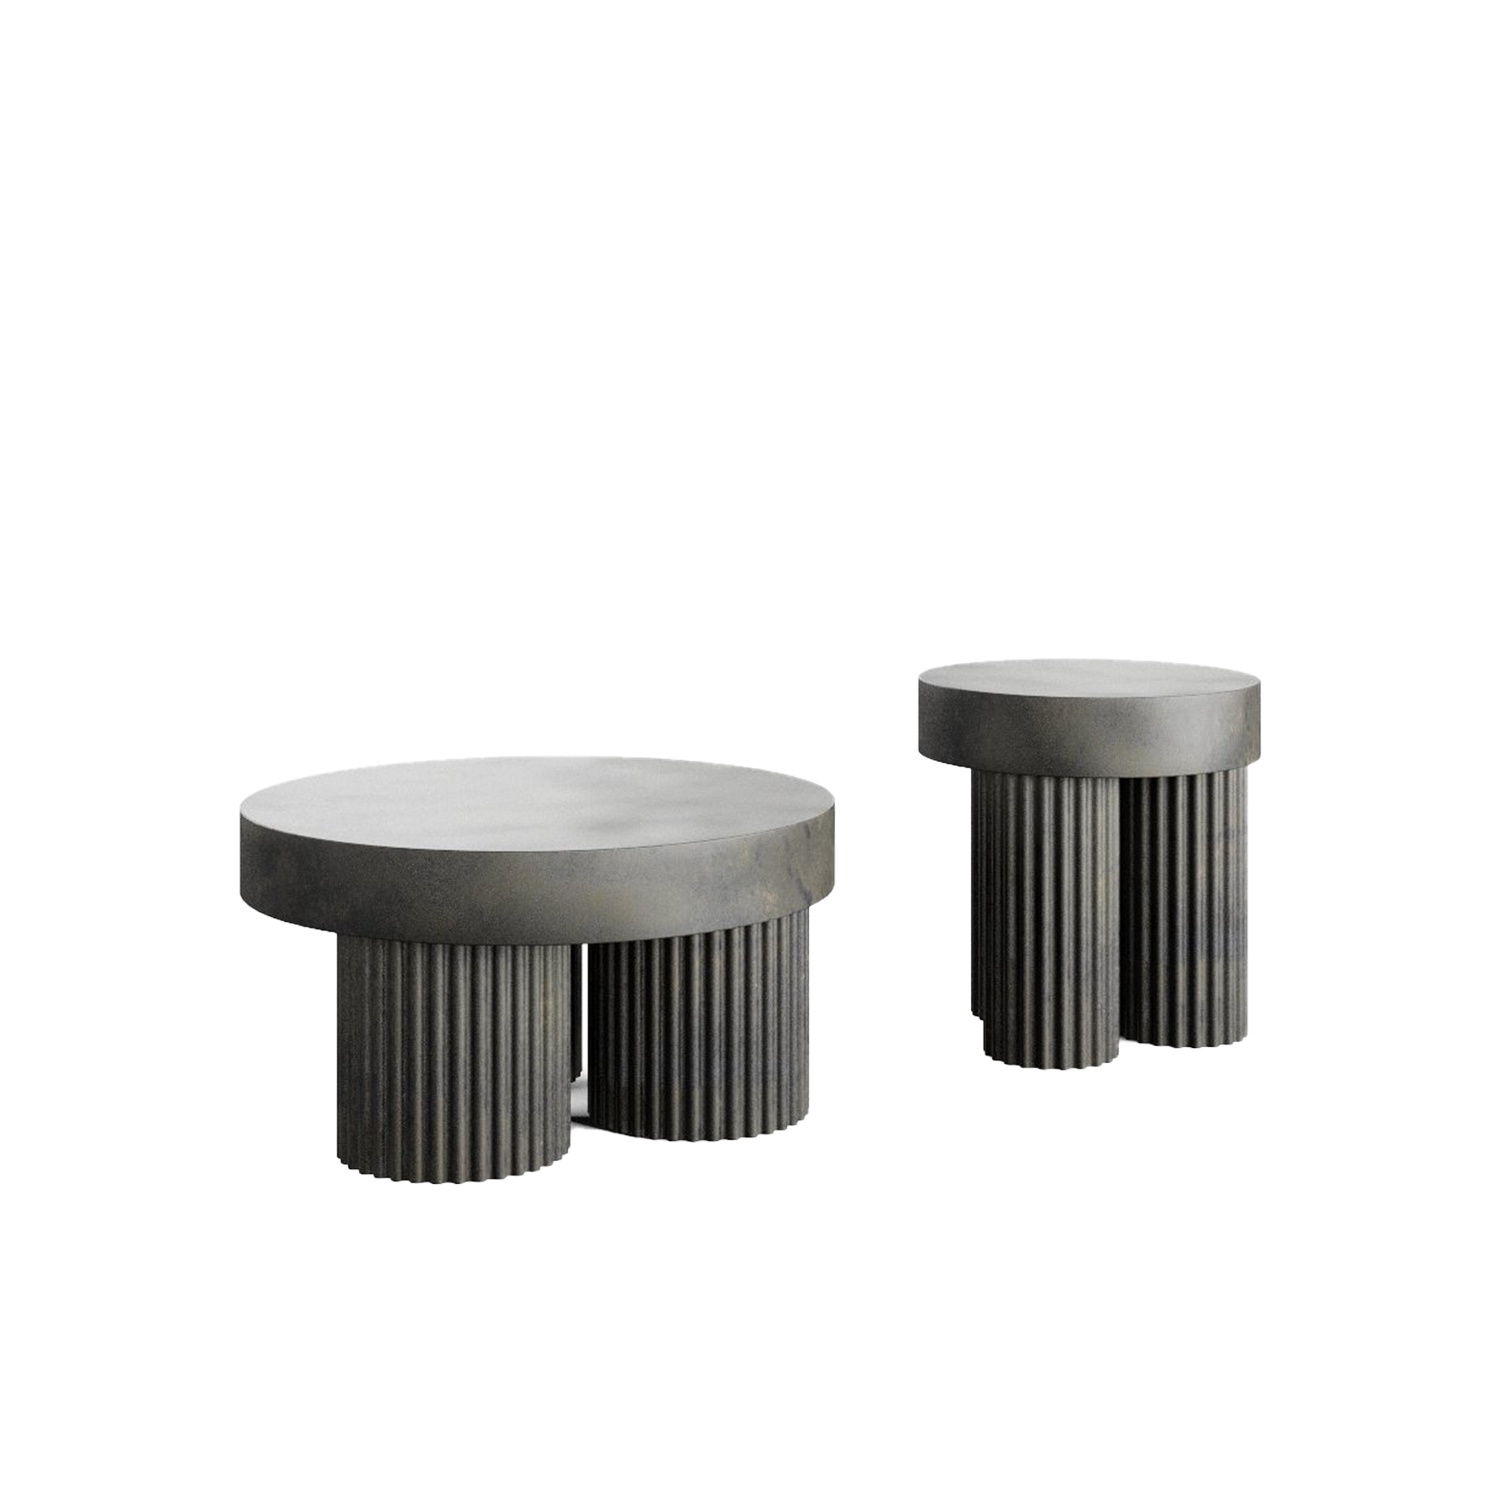 Gear Coffee Table  - Gear is inspired by Brutalism Architecture from the mid-20th century.    The sculptural coffee tables are designed as block-like structures, reflecting architectural building components of concrete. The Gear Tables comes with a circular table top, resting on top of three cylinder shaped legs. The legs are characterised by a riffled detail, adding a refined and organic signature to the architectural design.   The Gear coffee table is cast in lightweight fiber concrete, which creates a unique surface texture and increases mobility. Each piece is hand painted with multiple layers of paint, creating a unique and textured surface.  | Matter of Stuff